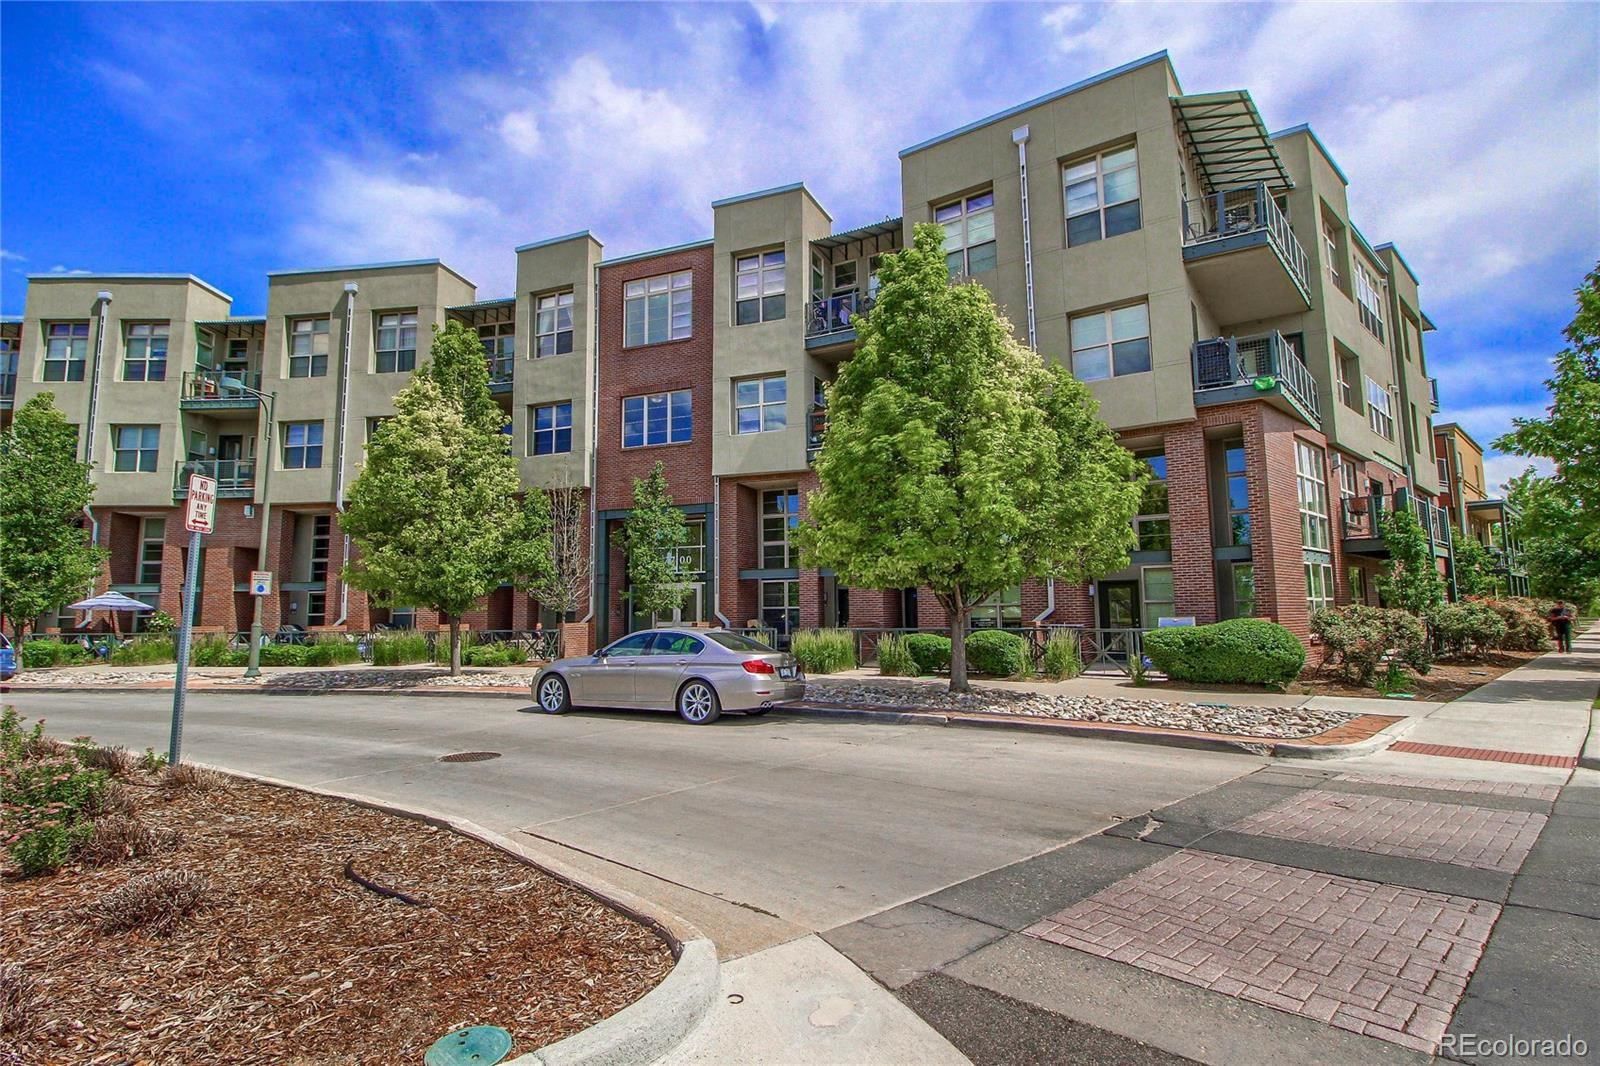 7700 E 29th Avenue #314, Denver, CO 80238 - #: 6938974